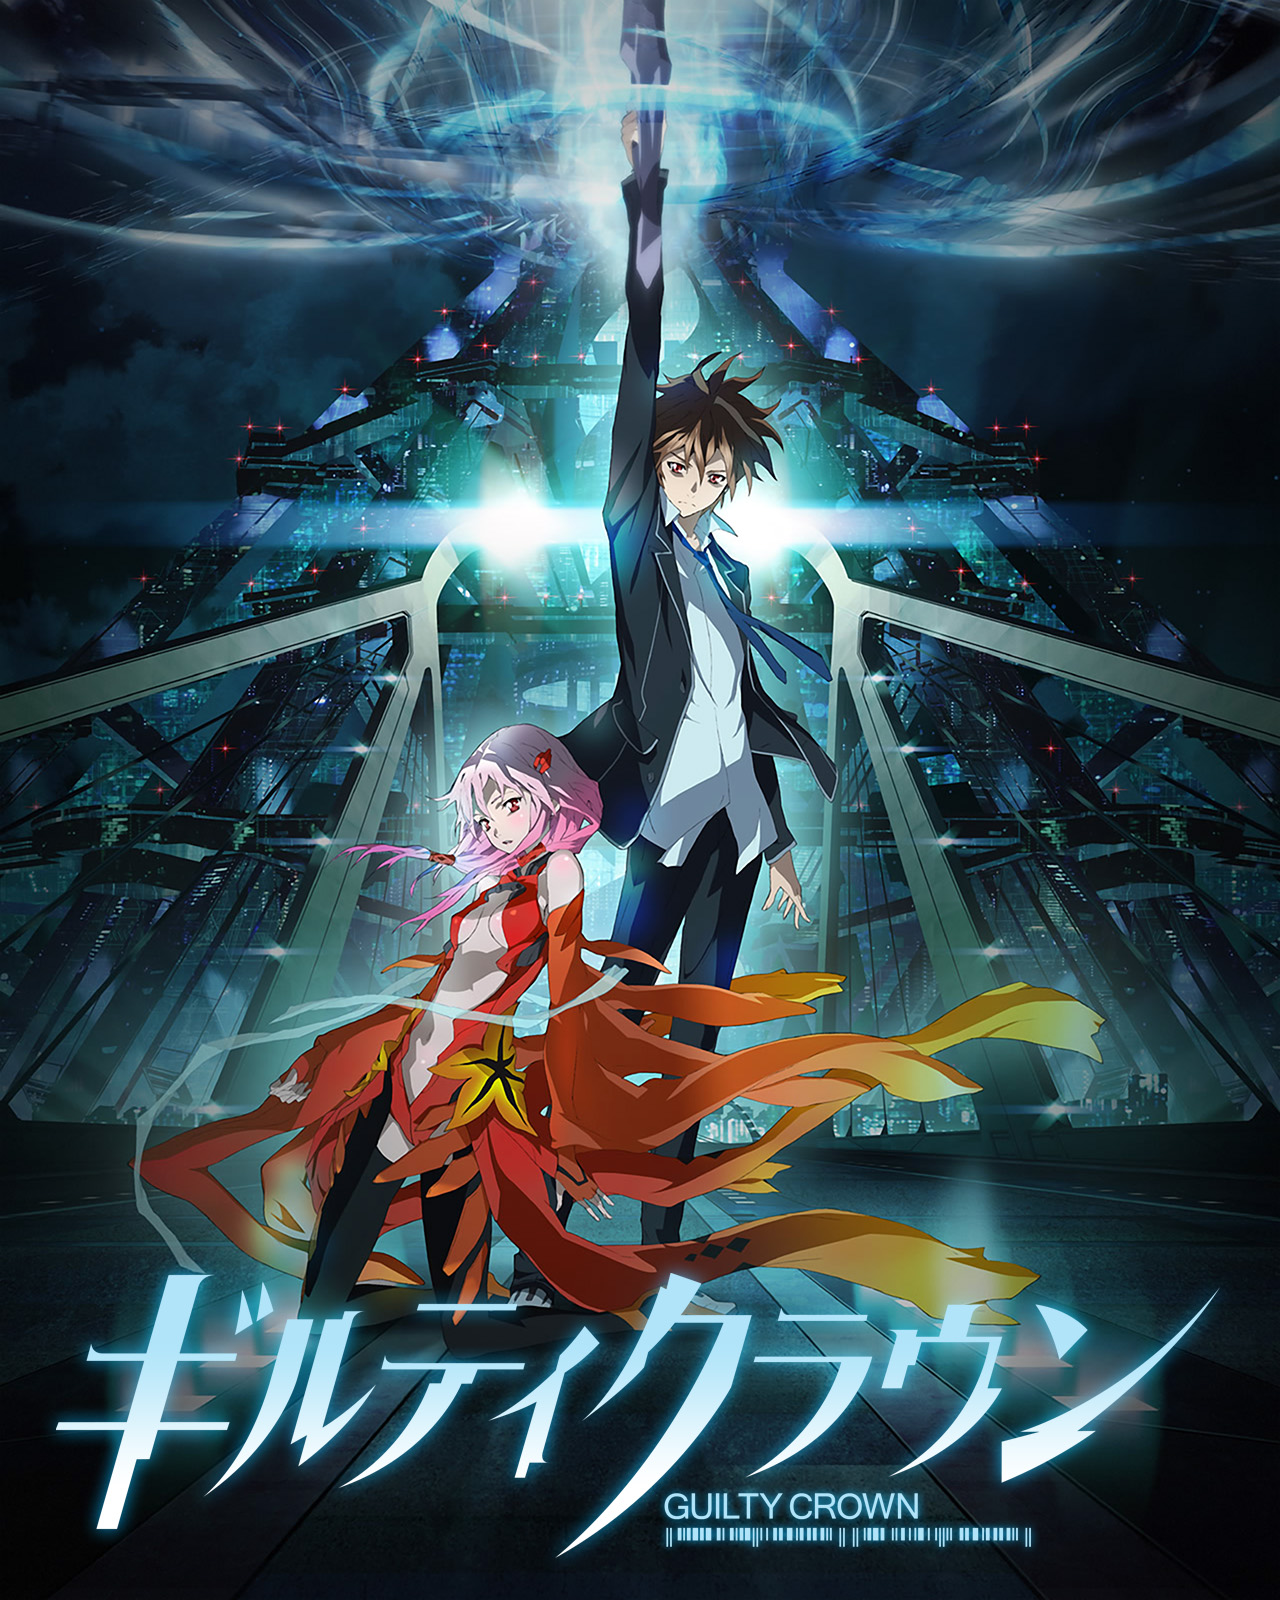 Корона греха / Guilty Crown [Сезон 1, Серия 1-22 из 22 +OVA] 2011